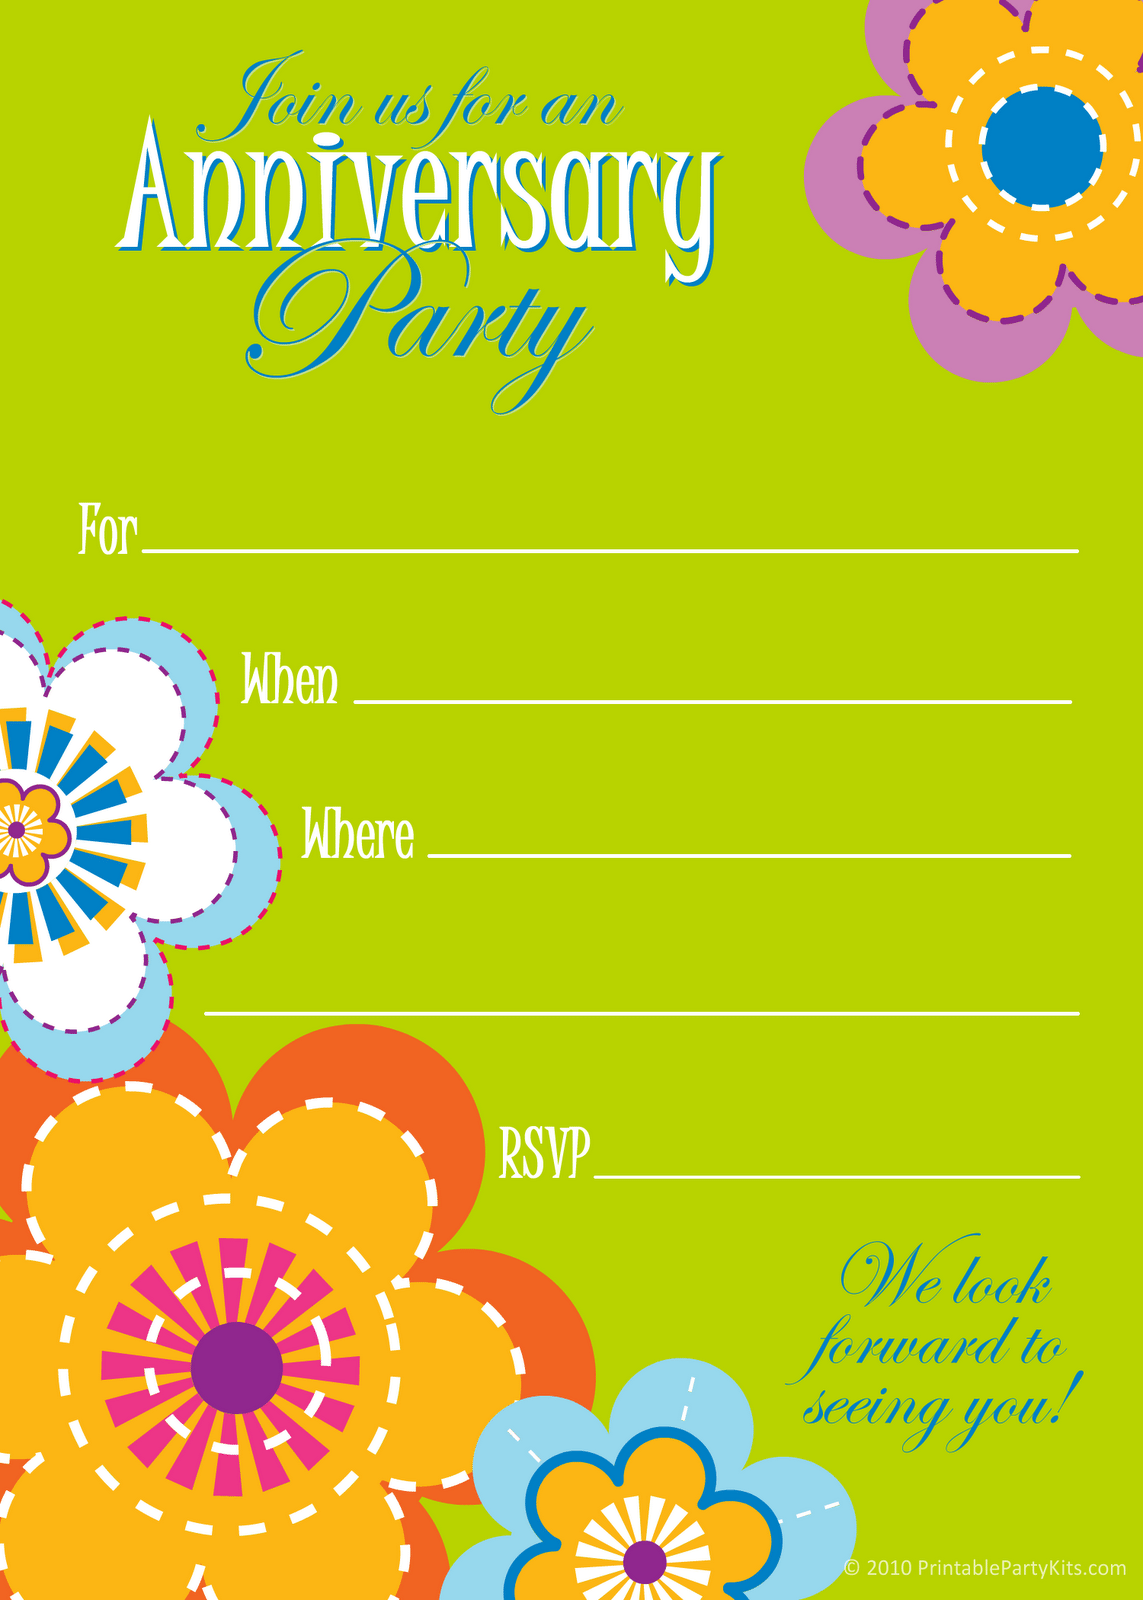 Wedding Anniversary Invitation Template Free